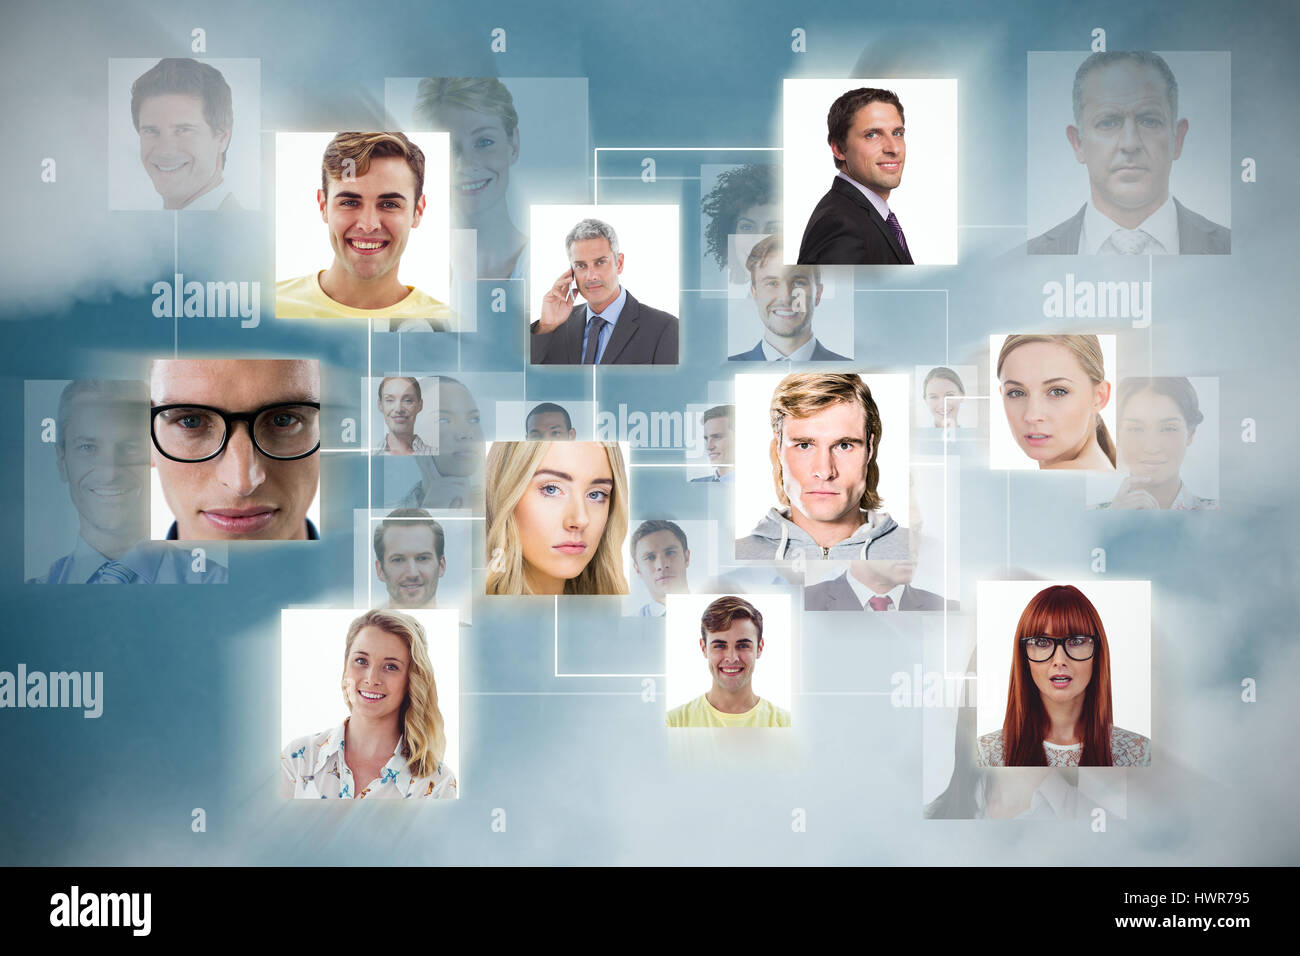 Composite image of headshots against dark blue background - Stock Image